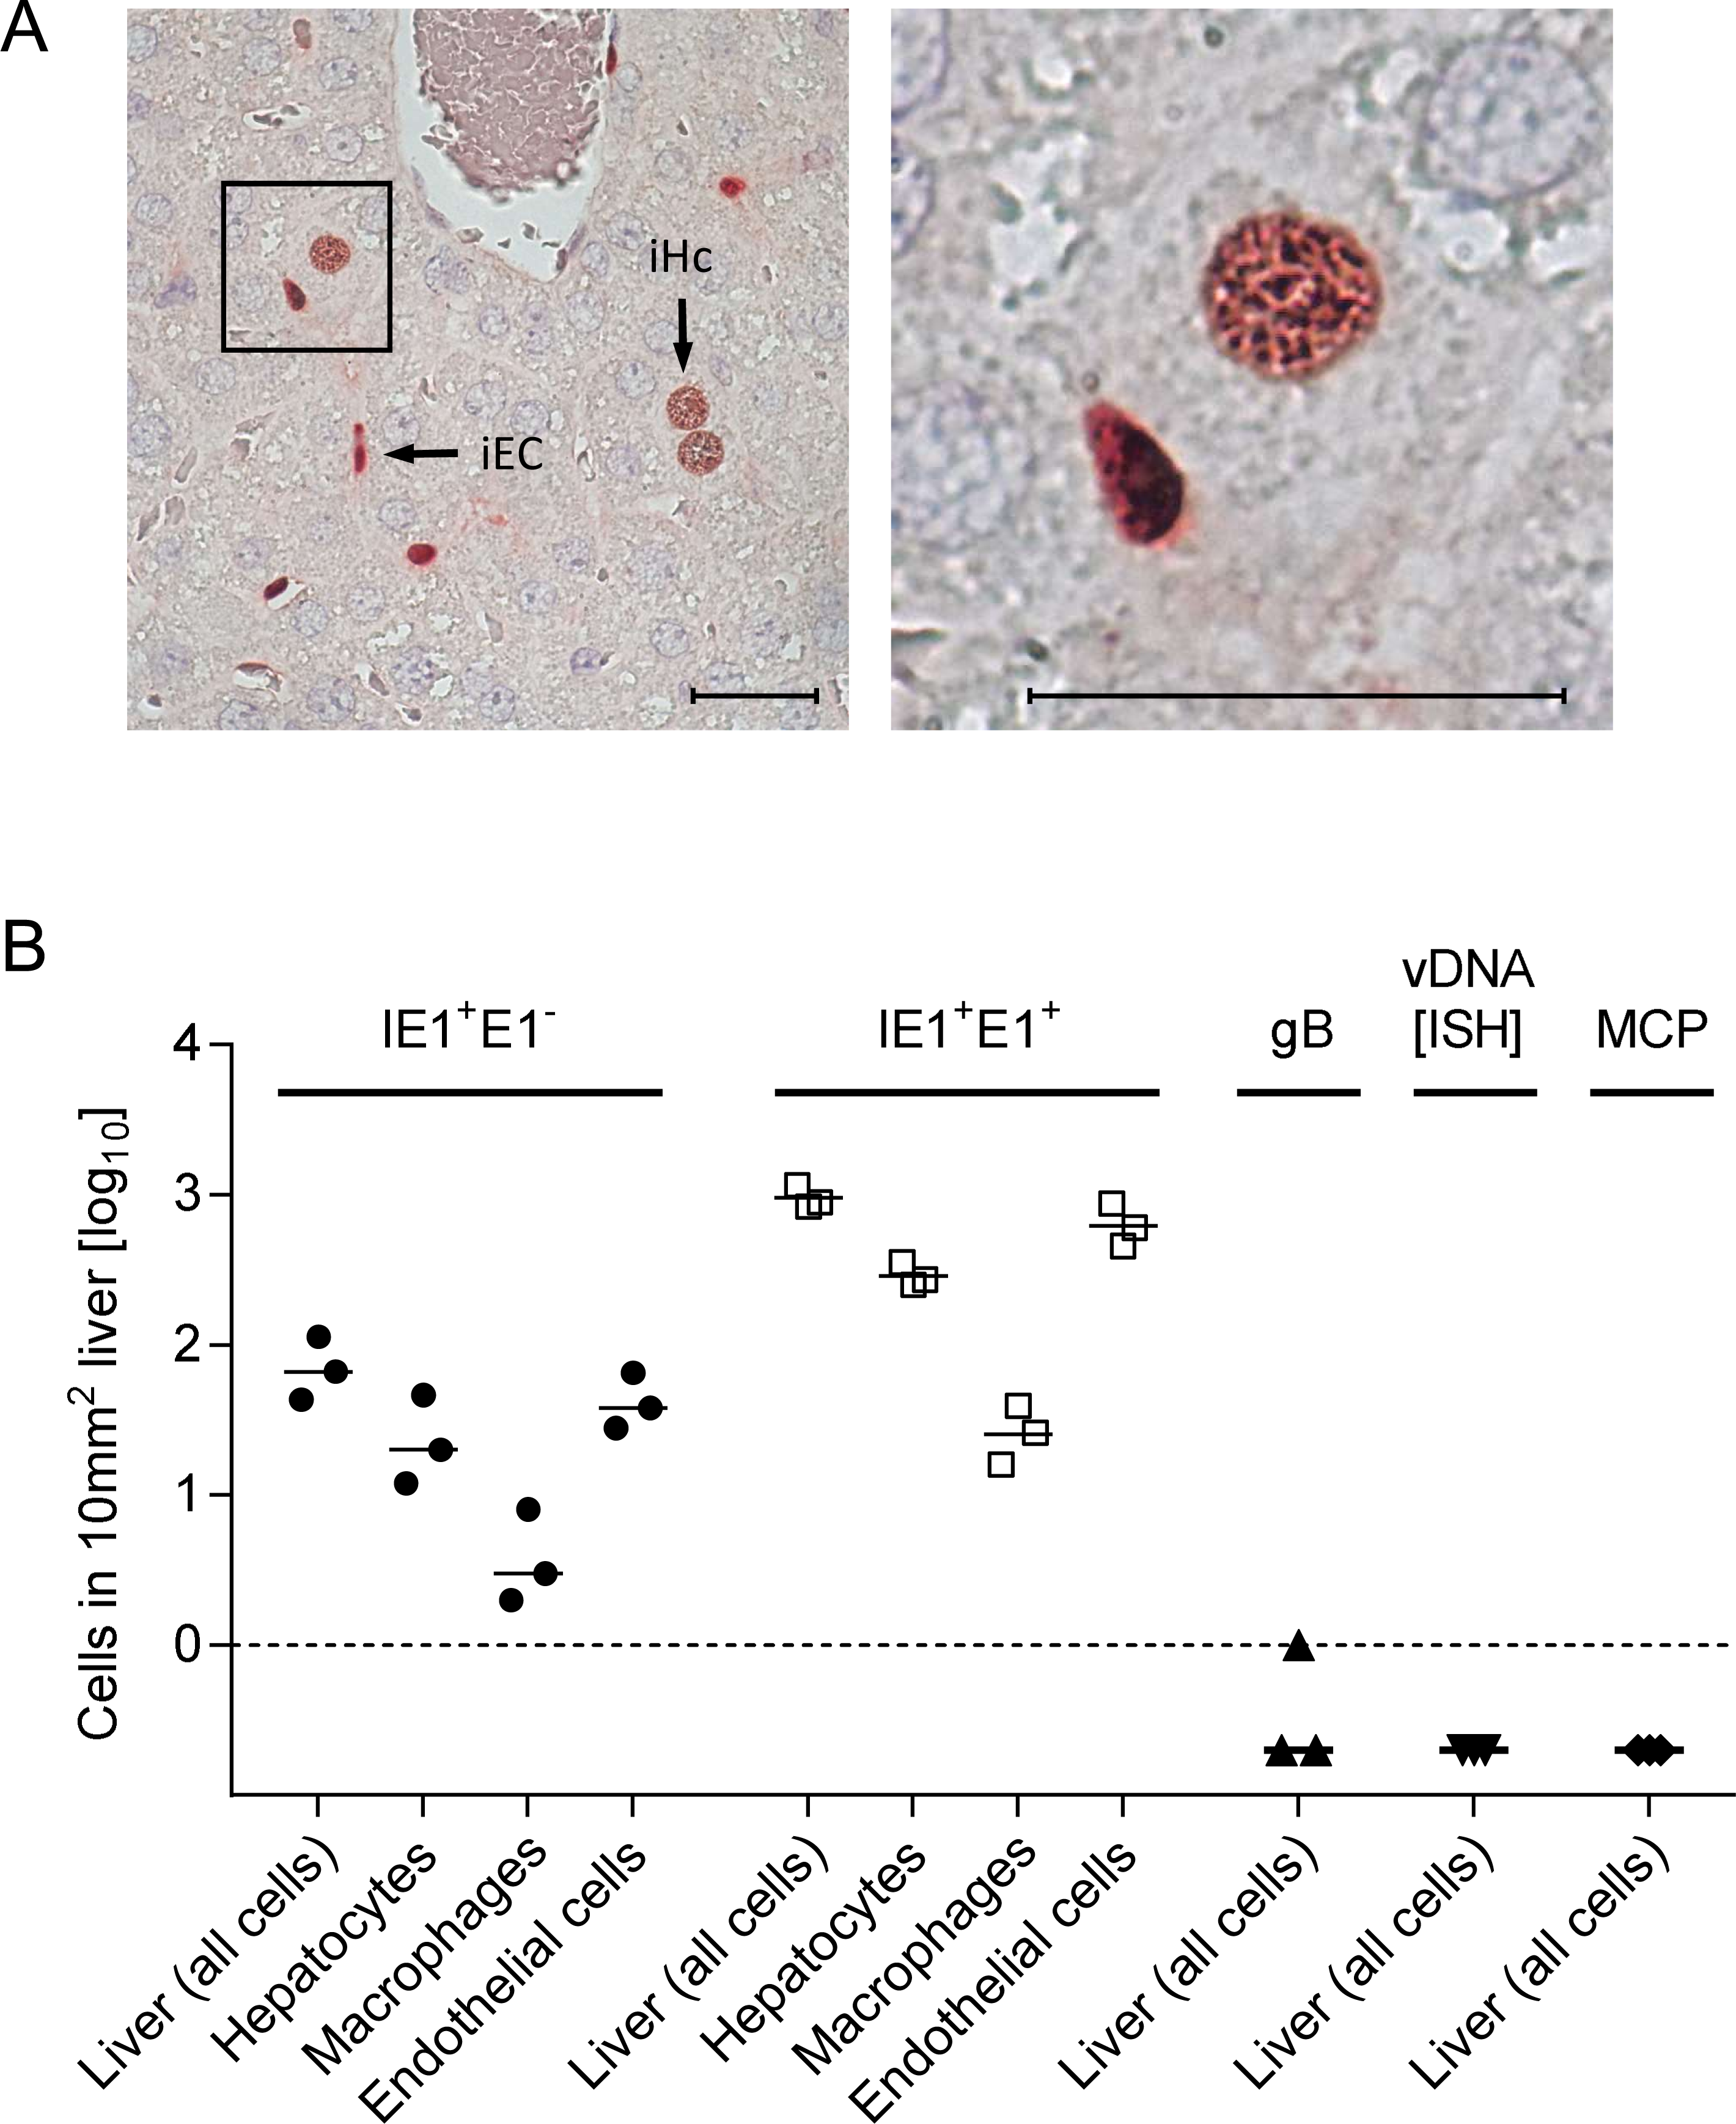 Synchronicity of infection initiation in main cell types of the liver.